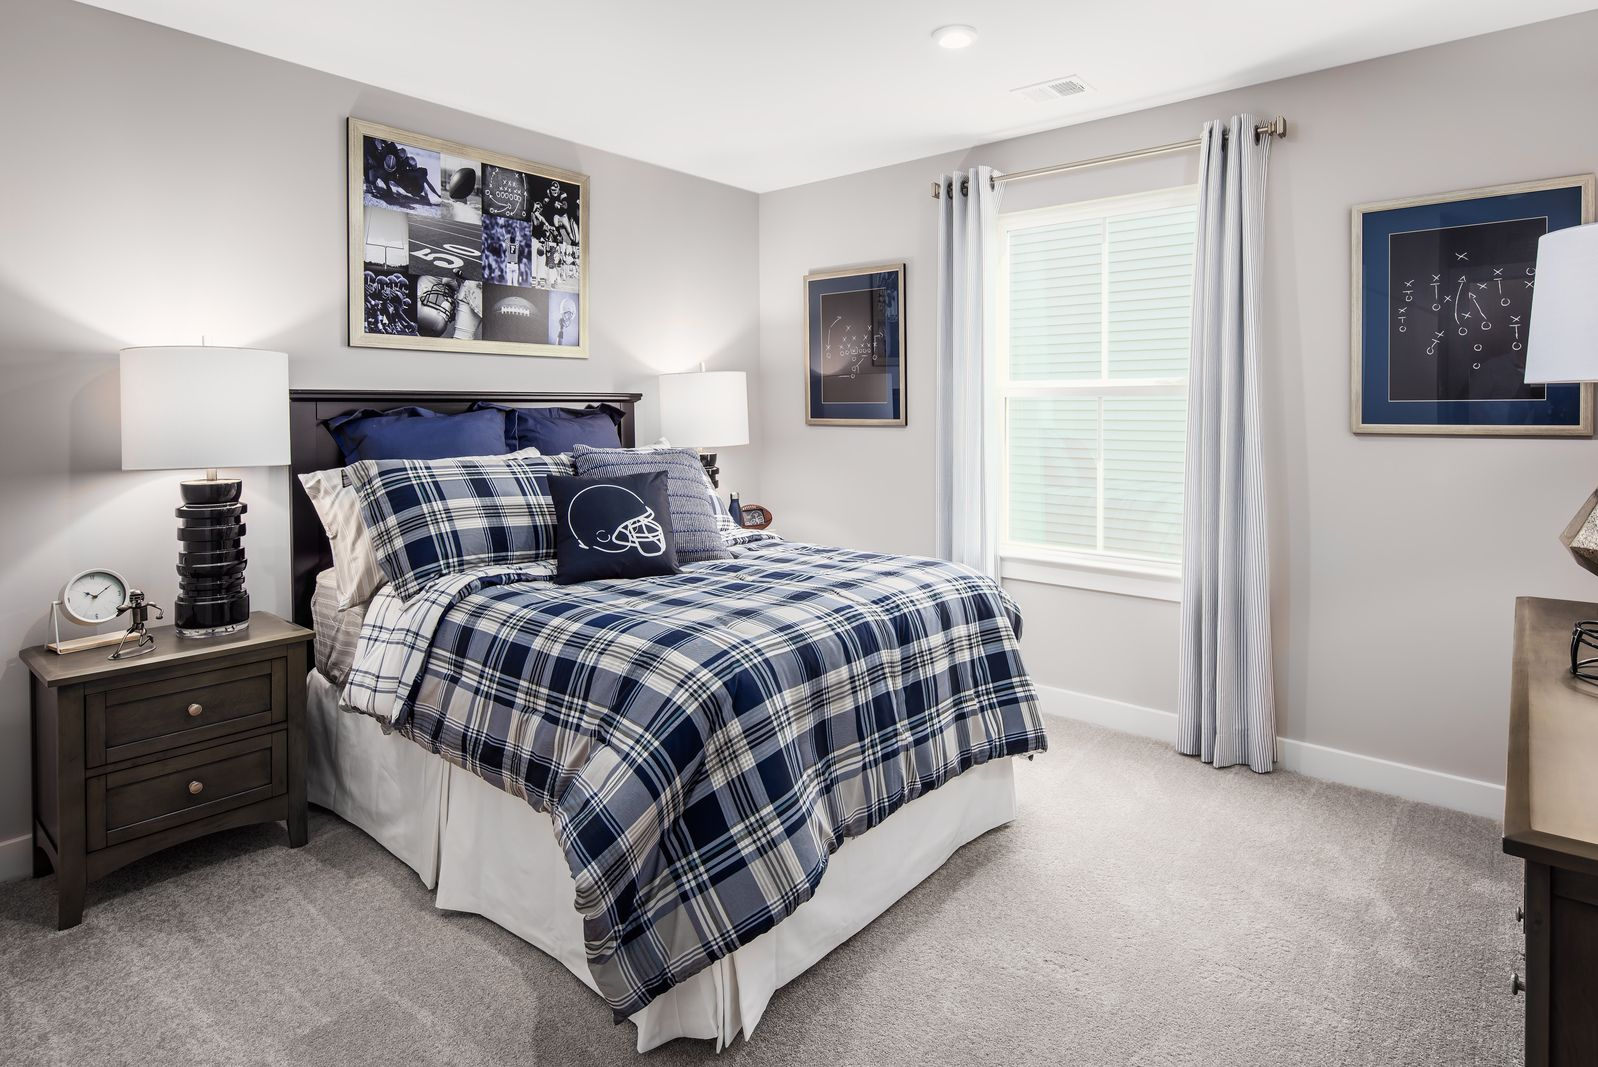 Bedroom featured in the Lehigh By Ryan Homes in Washington, VA